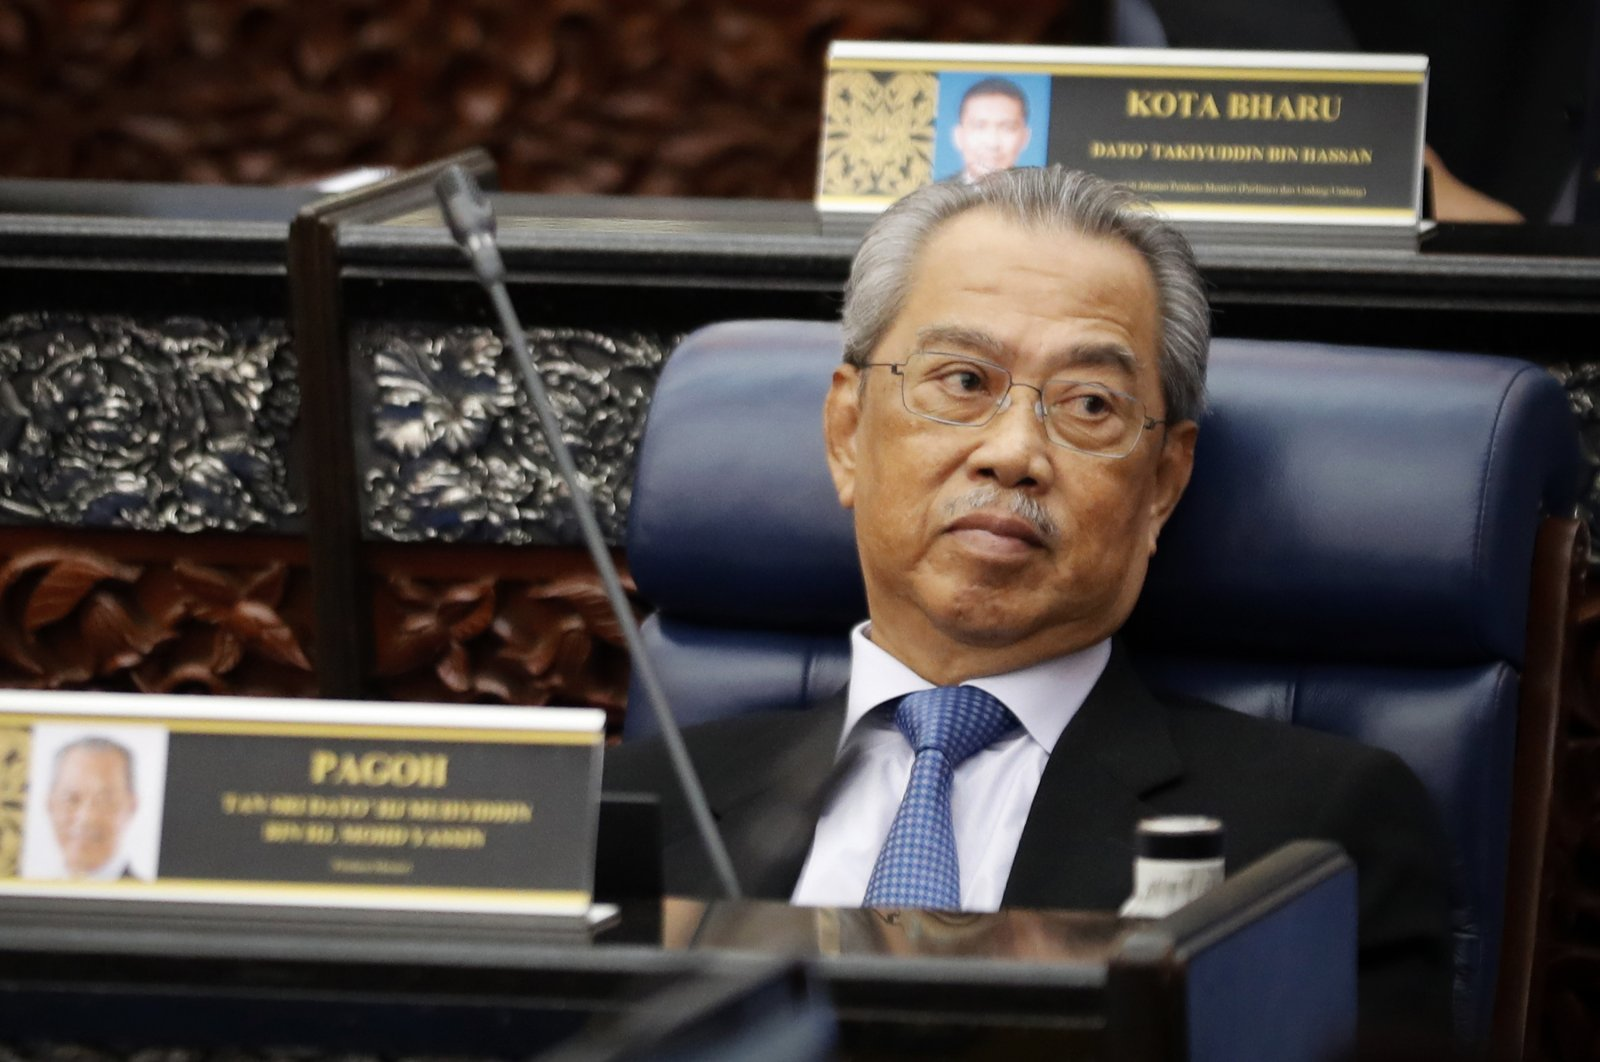 Malaysian Prime Minister Muhyiddin Yassin attends a Parliament session at lower house in Kuala Lumpur, Malaysia, July 13, 2020. (AP Photo)